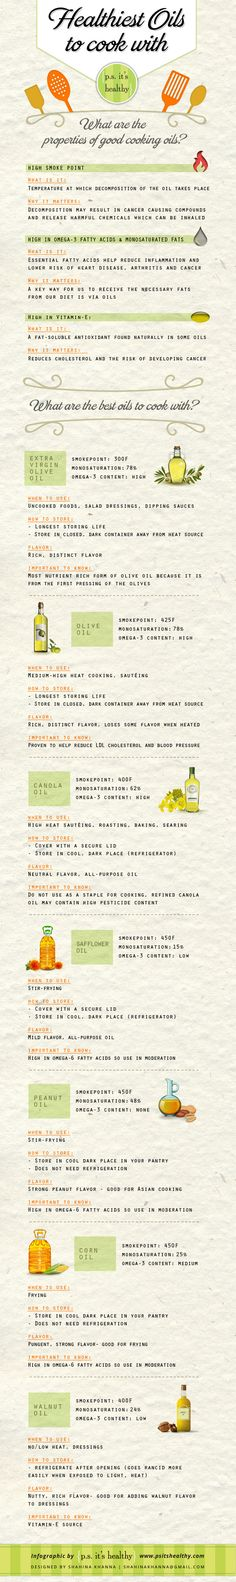 Healthies Oils to cook with... only extra virgin in a natural oil, natural (not chemical) olive juice!